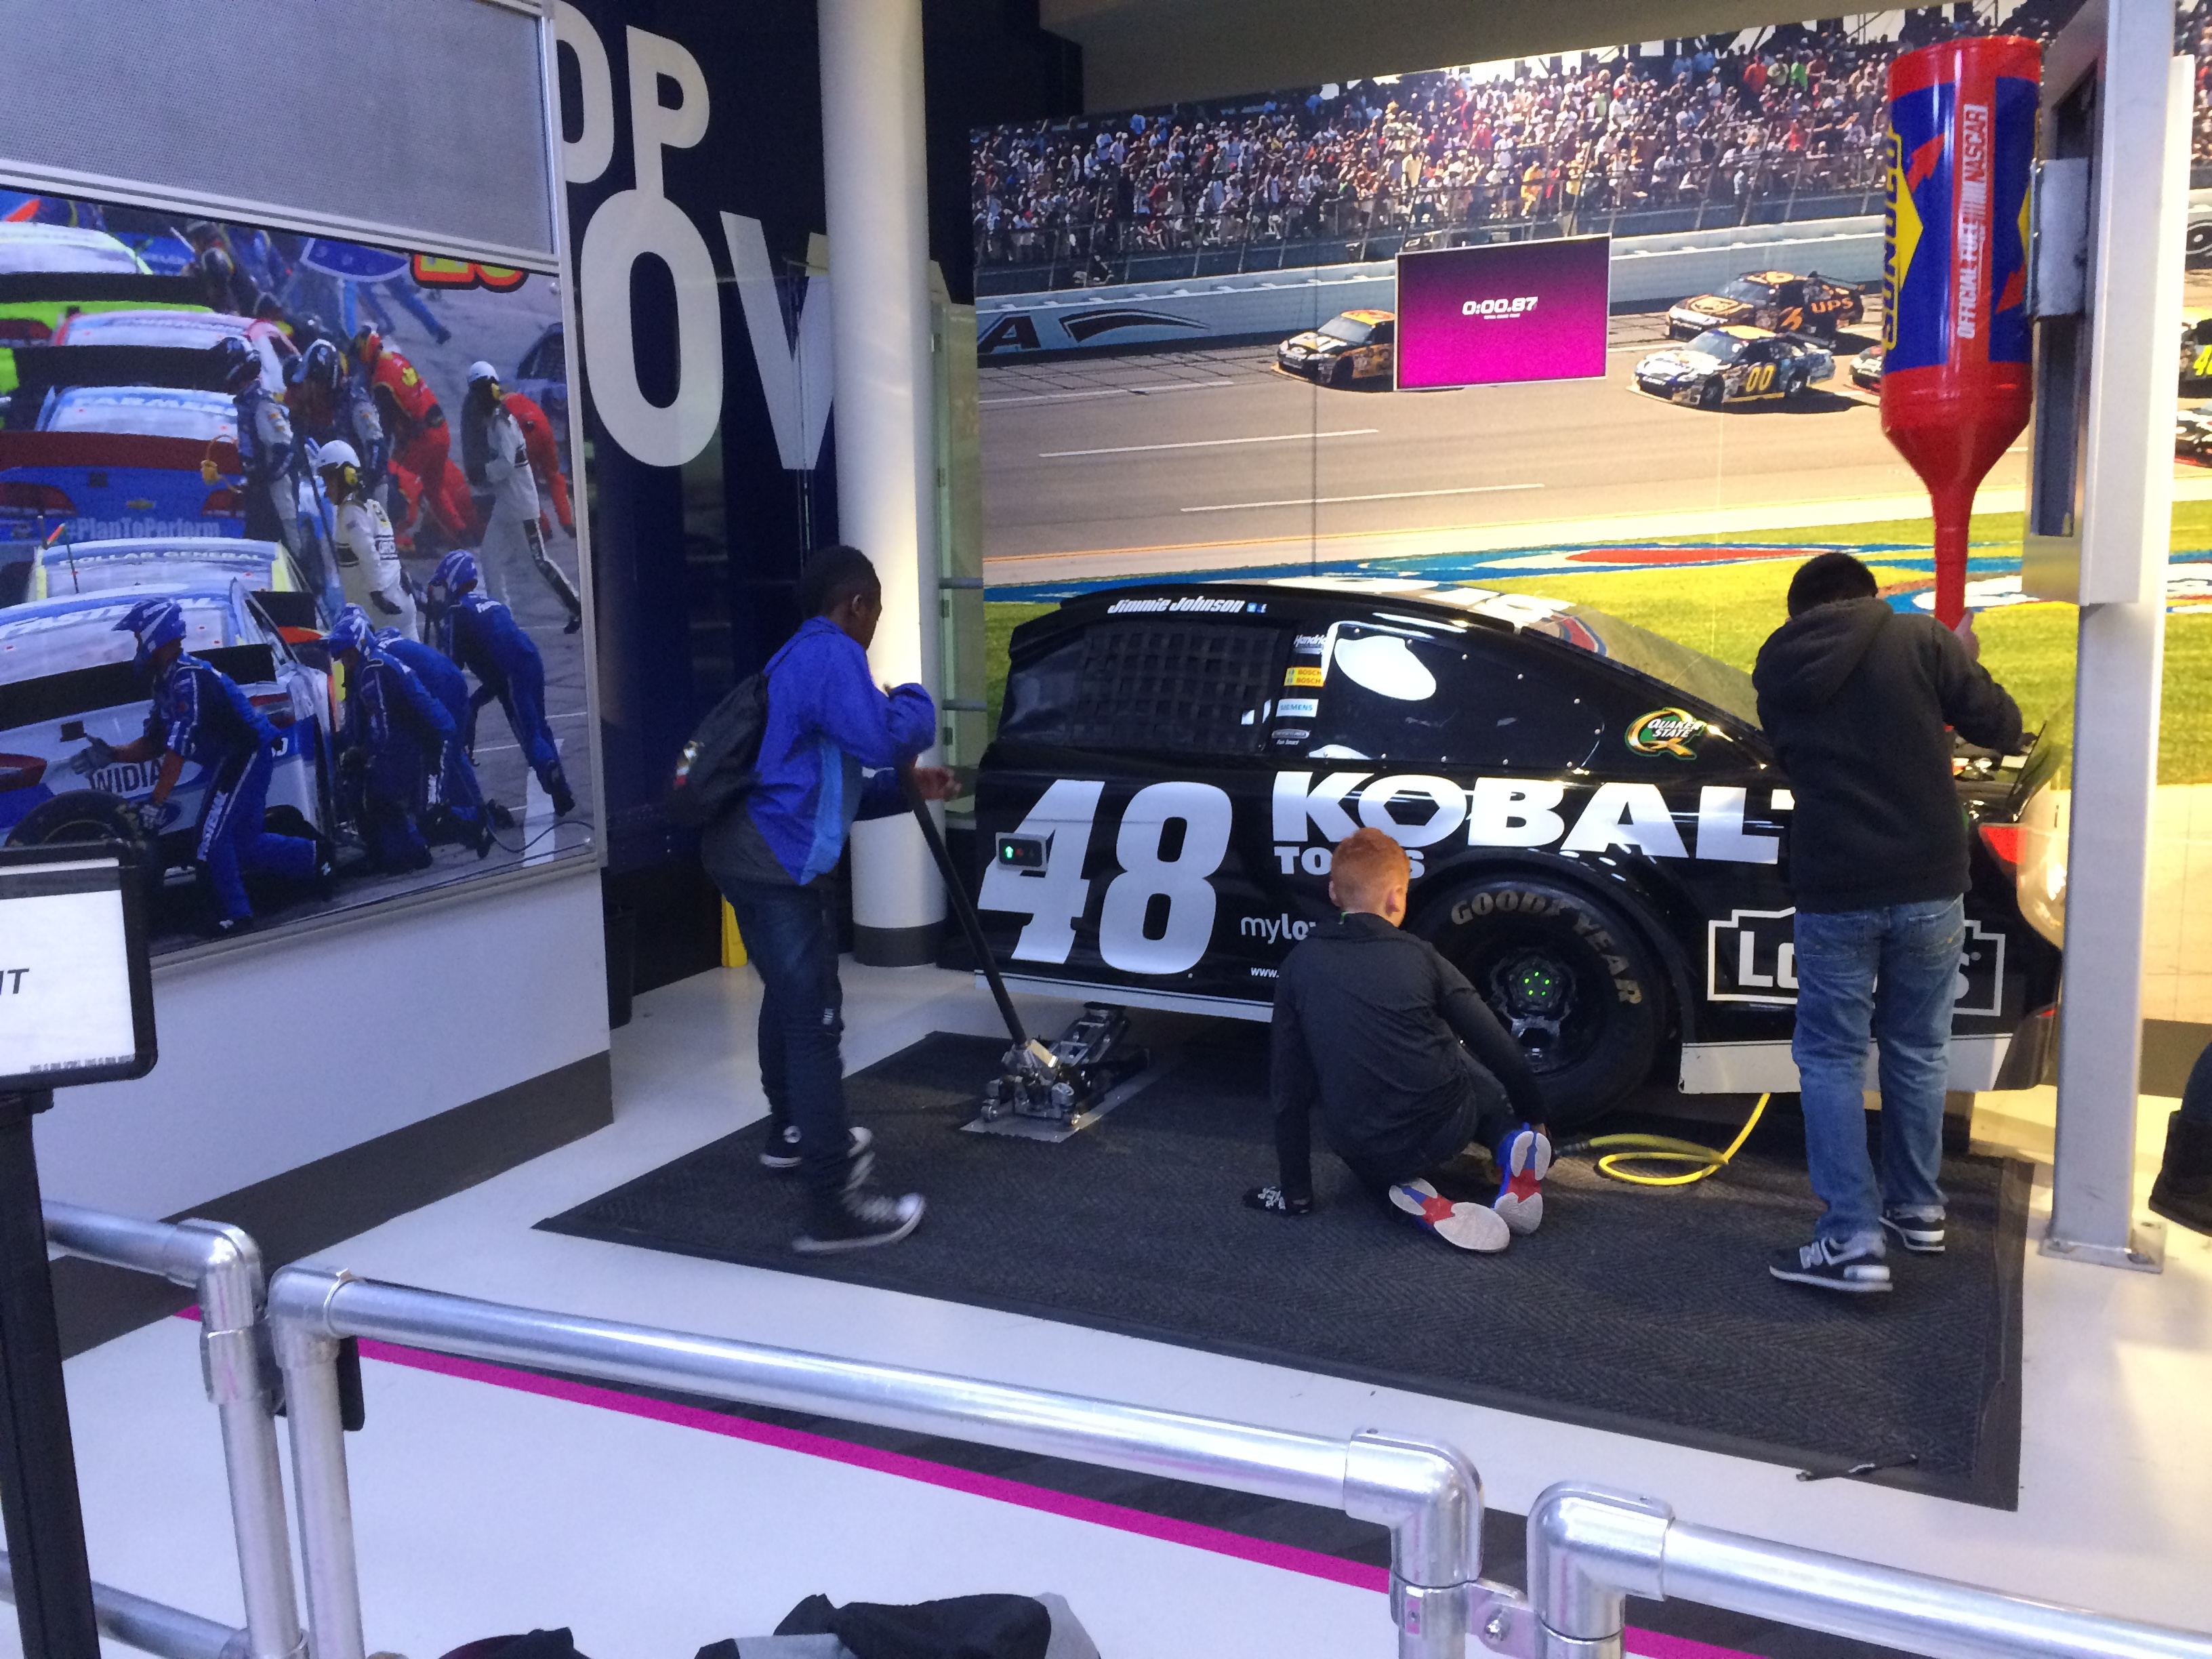 three ten80 students interacting with race car display of changing a tire during a pit stop